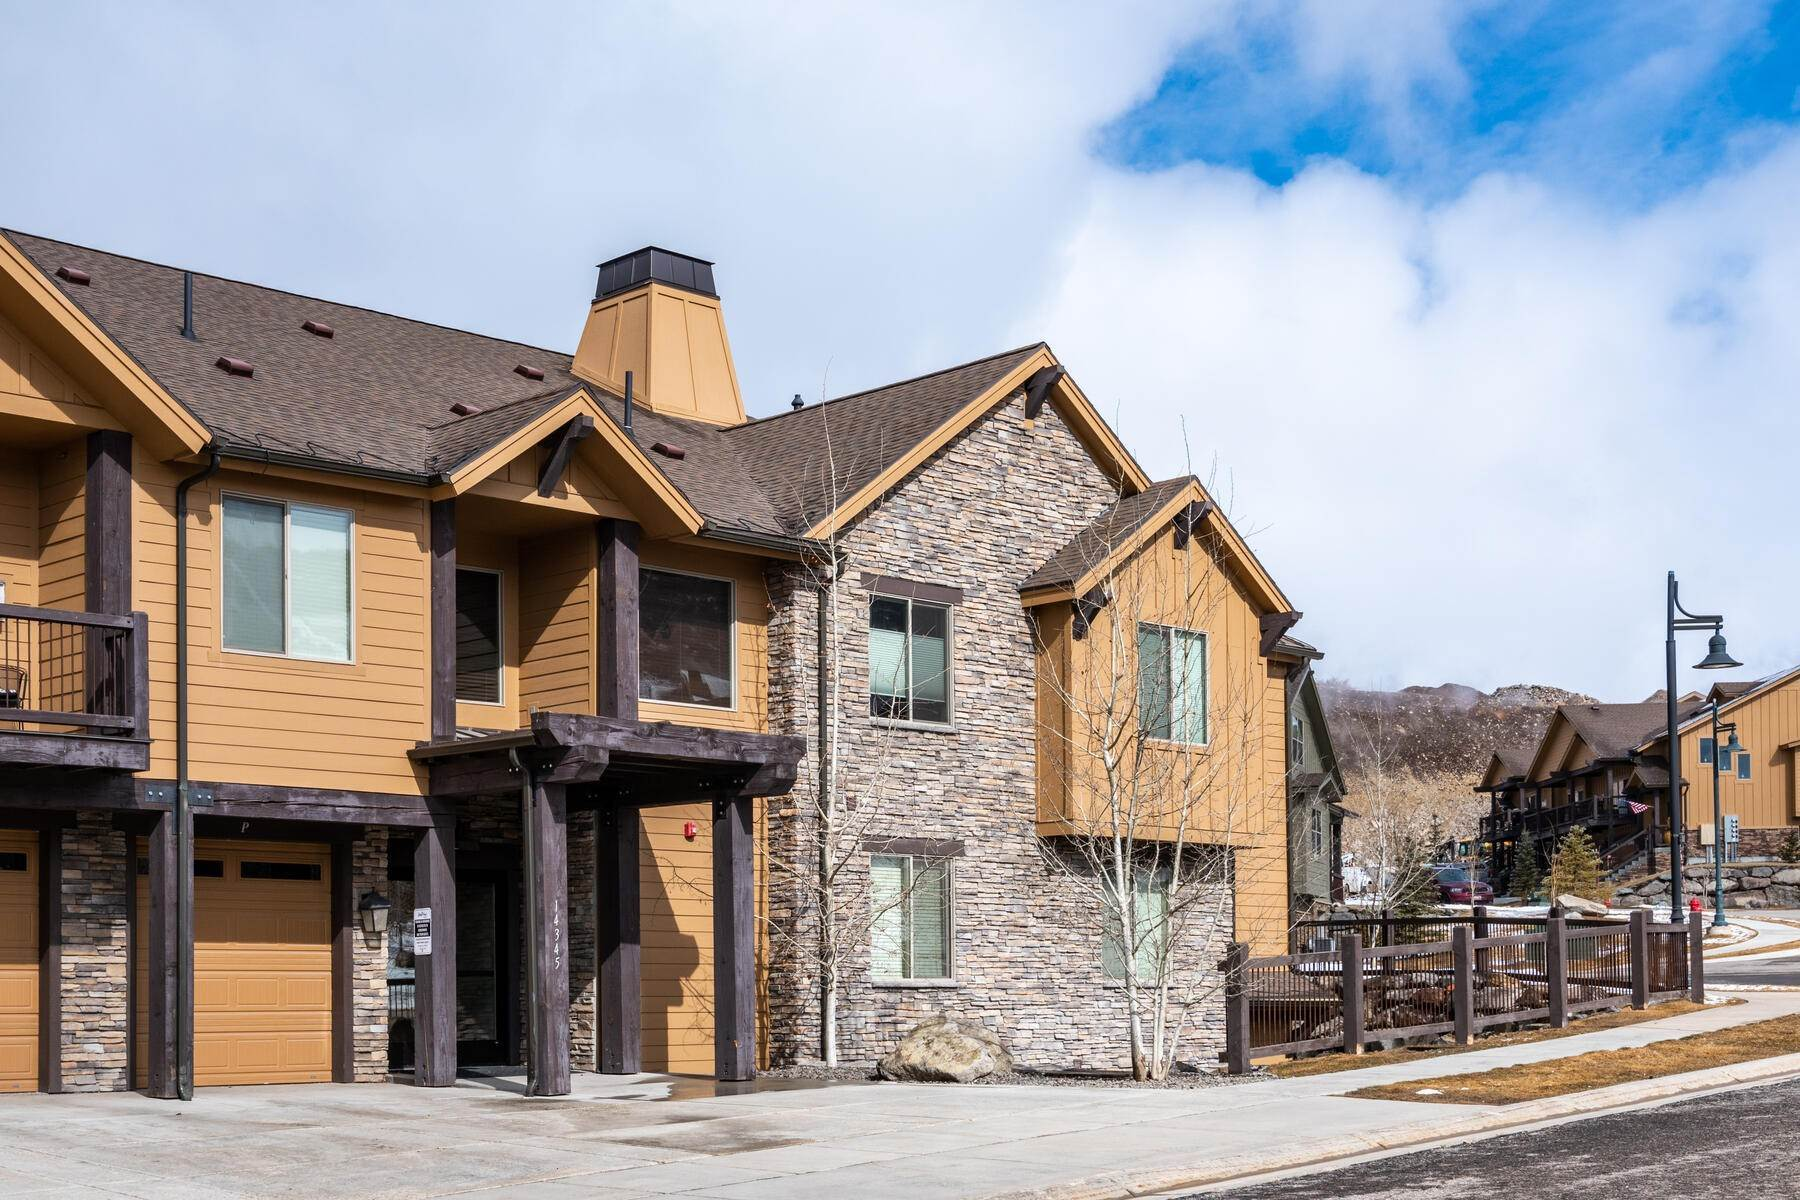 Condominiums for Sale at 3 Bedrooms Under $500k Within Minutes of Park City 14345 N Buck Horn Trail E Kamas, Utah 84036 United States